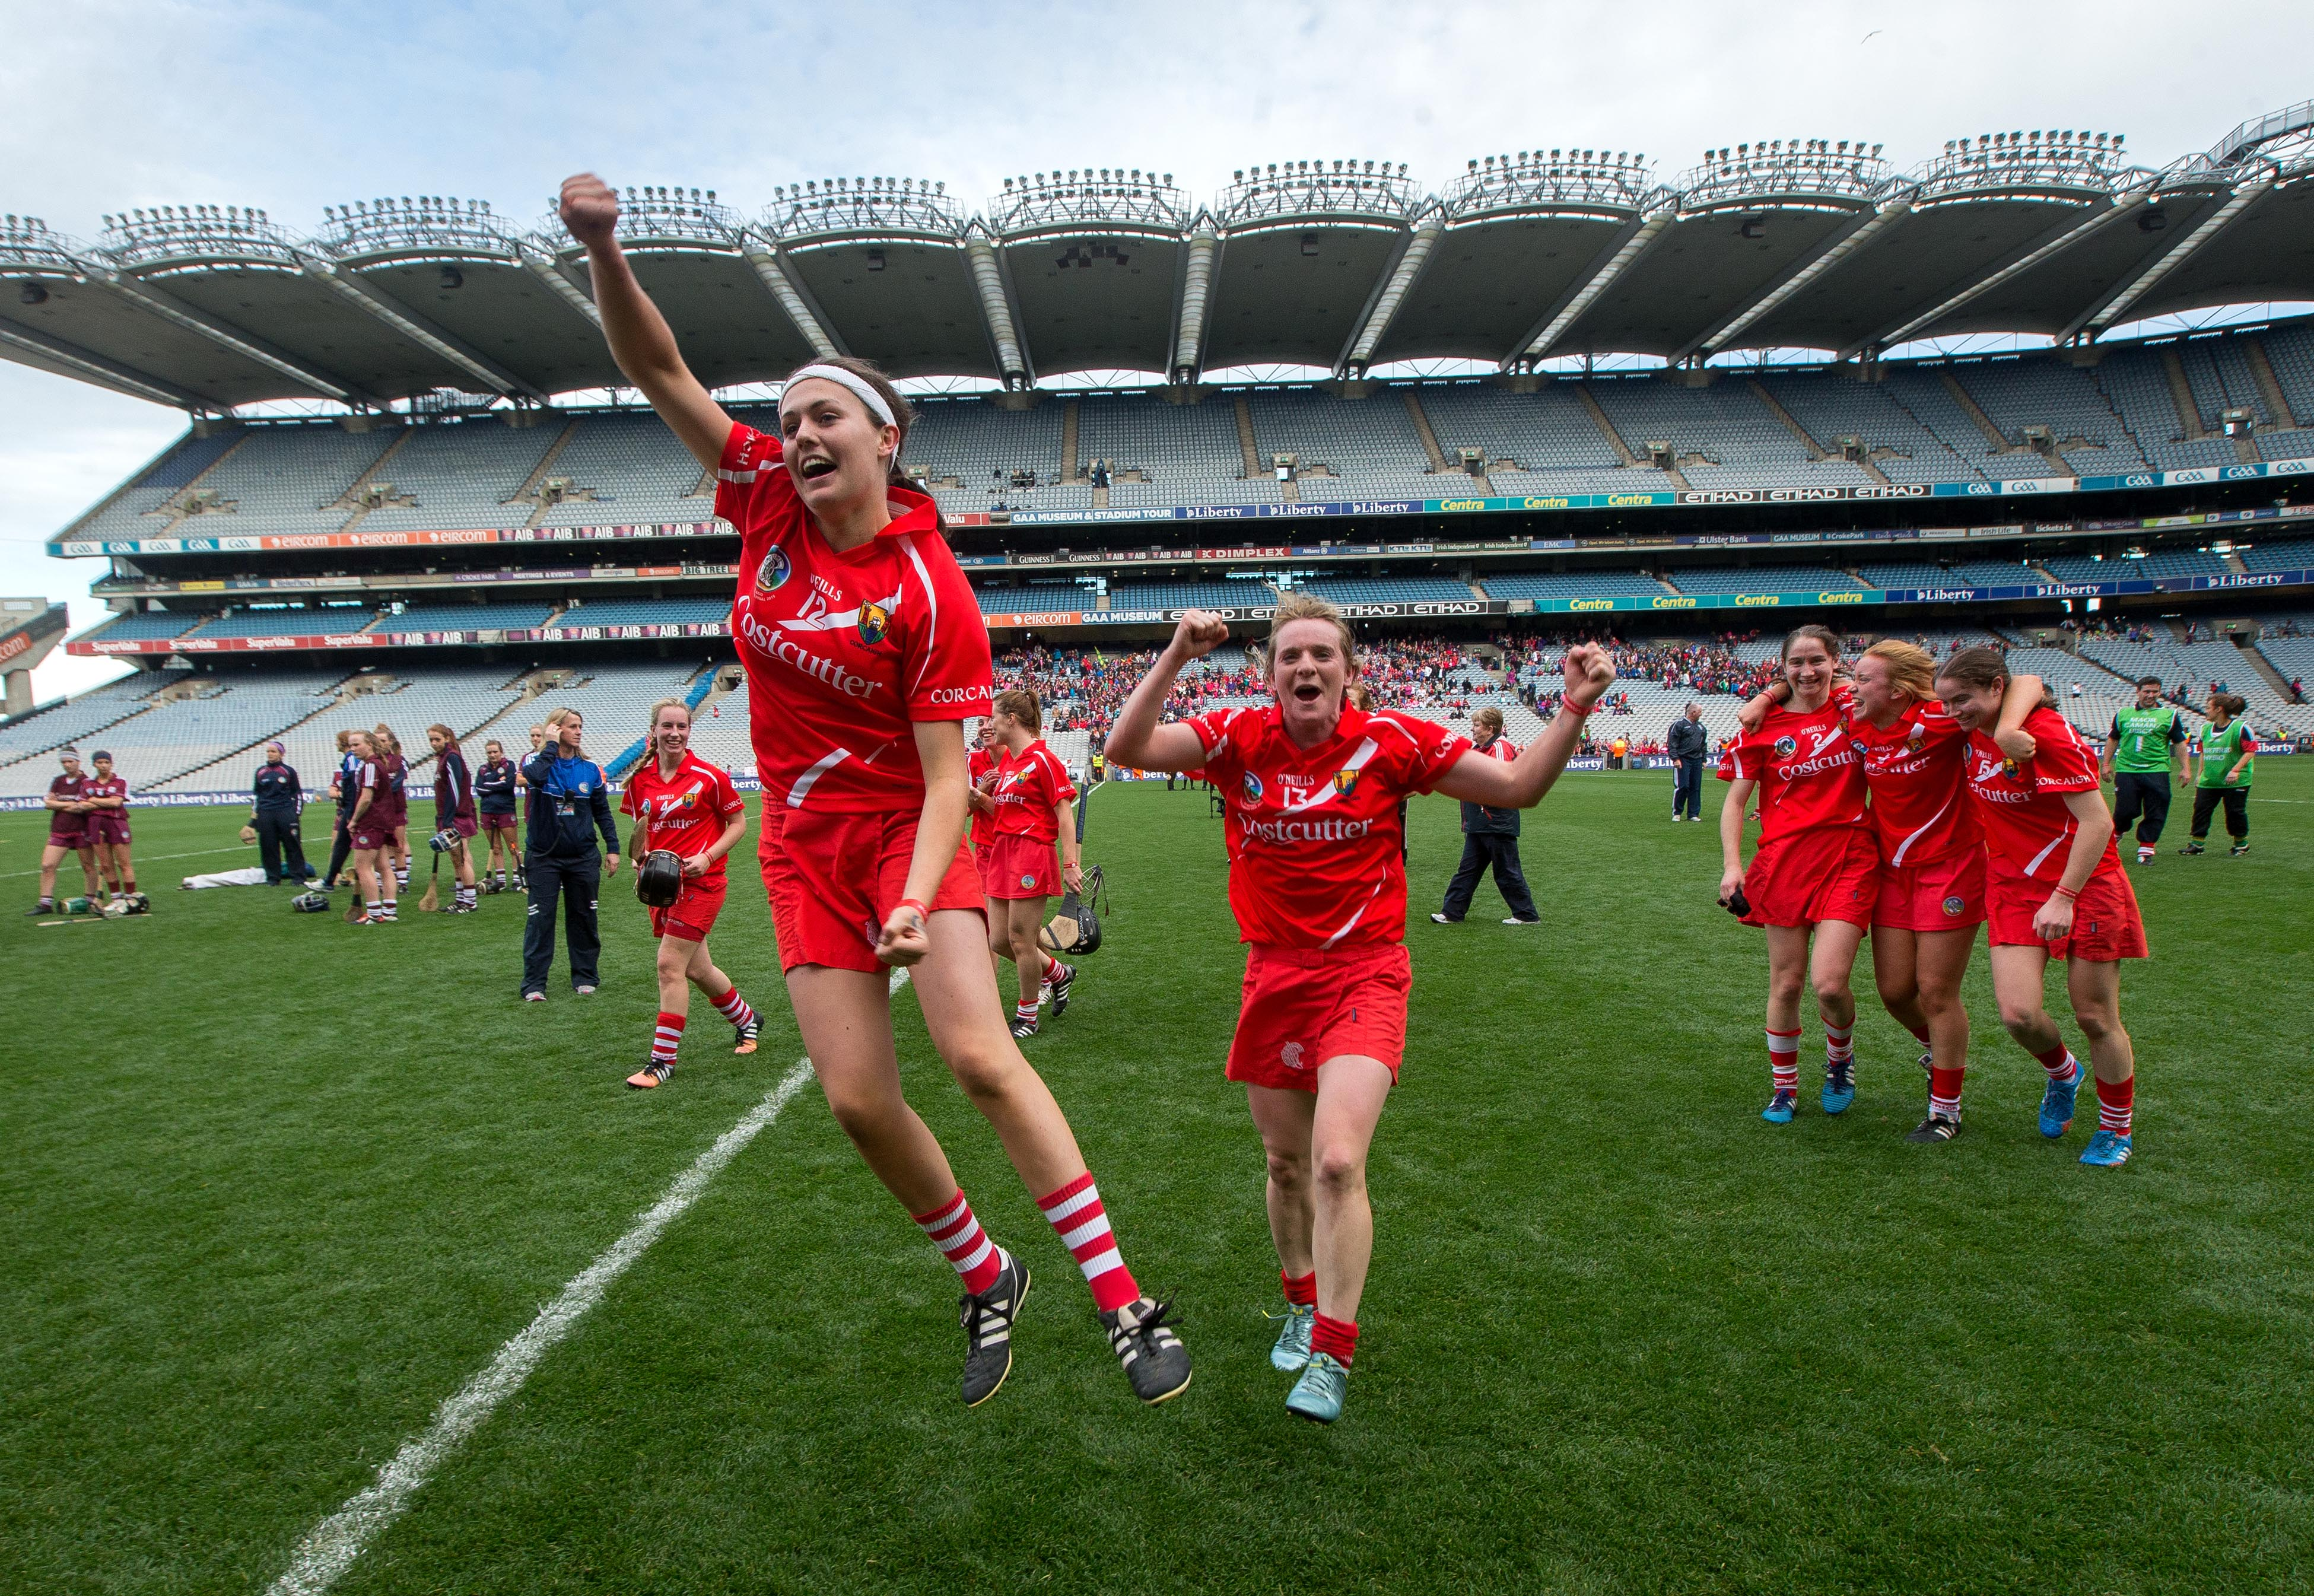 REPRO FREE***PRESS RELEASE NO REPRODUCTION FEE*** Liberty Insurance Senior Camogie Championship Final, Croke Park, Dublin 13/9/2015 Cork vs Galway Cork's Hannah Looney and Briege Corkery celebrate after the game Mandatory Credit ©INPHO/Ryan Byrne